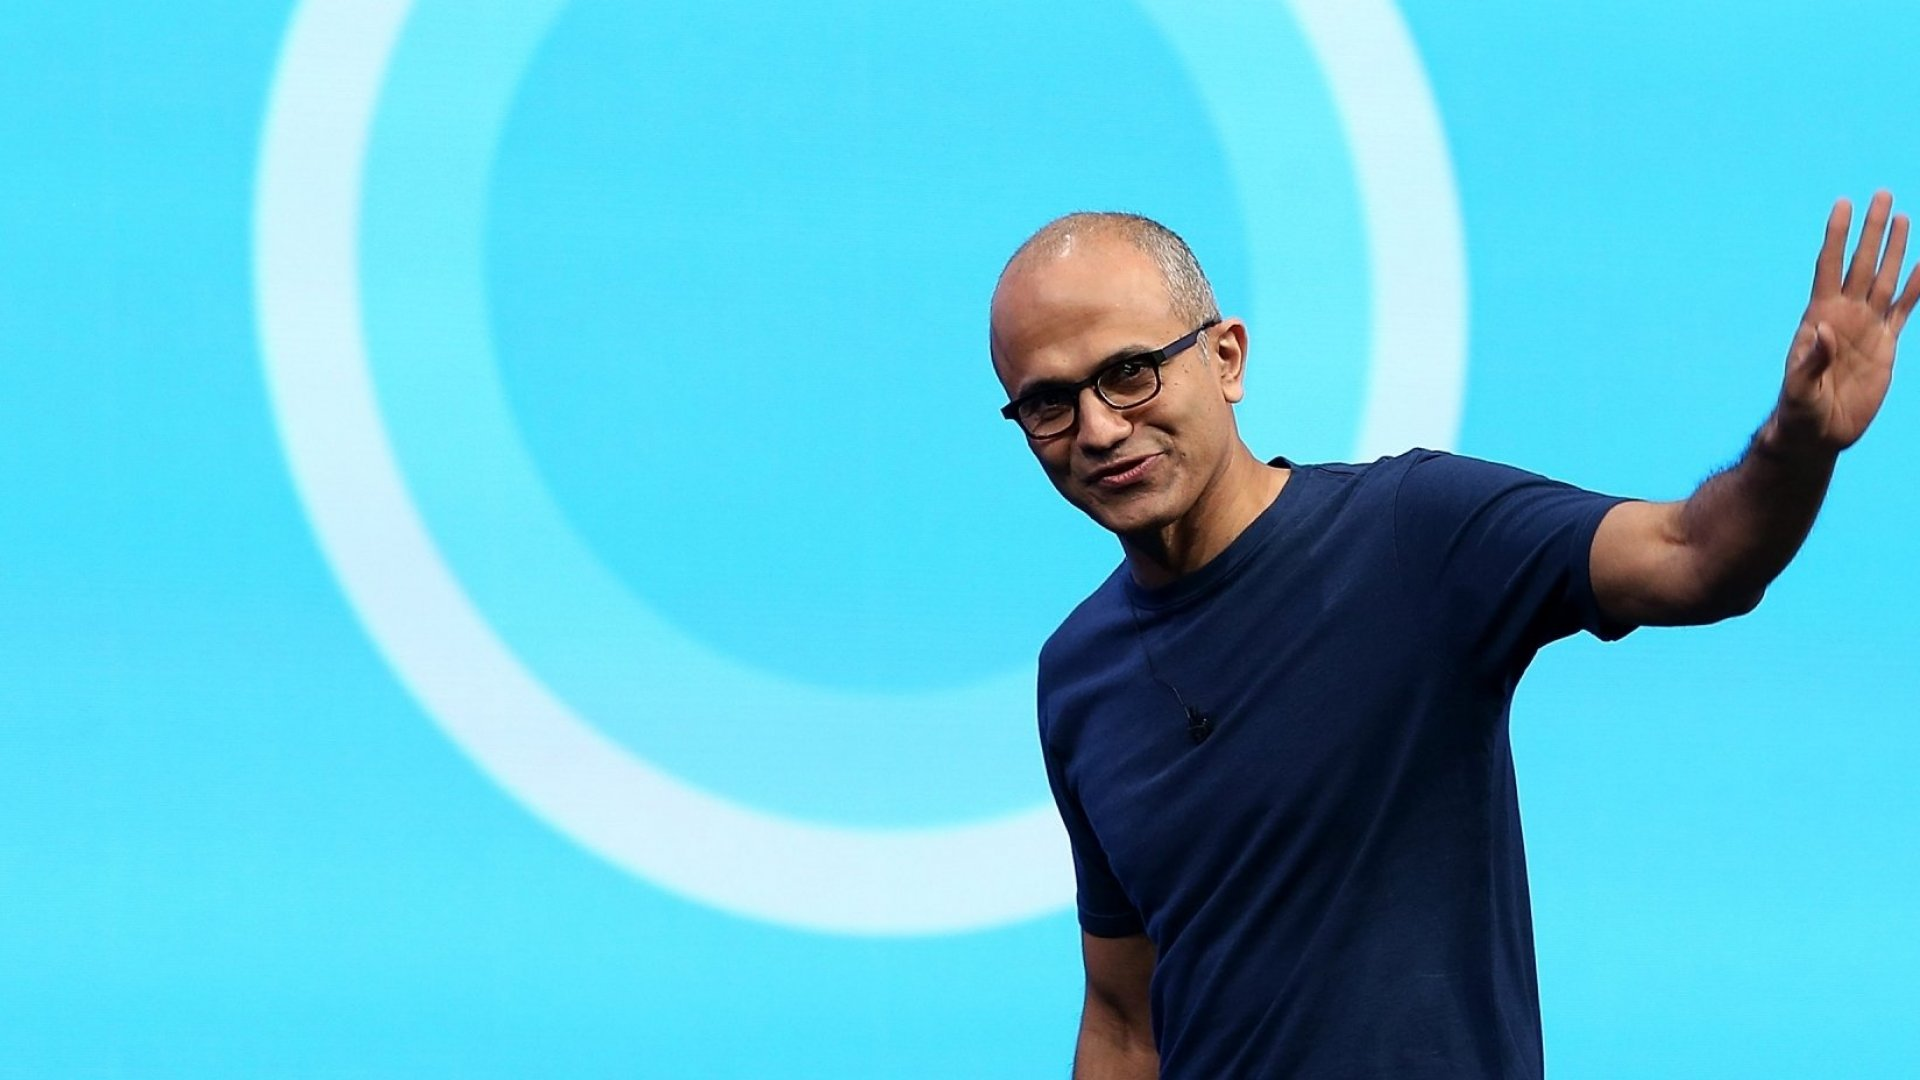 Microsoft's CEO Knows How to Run a Meeting. Here's How He Does It